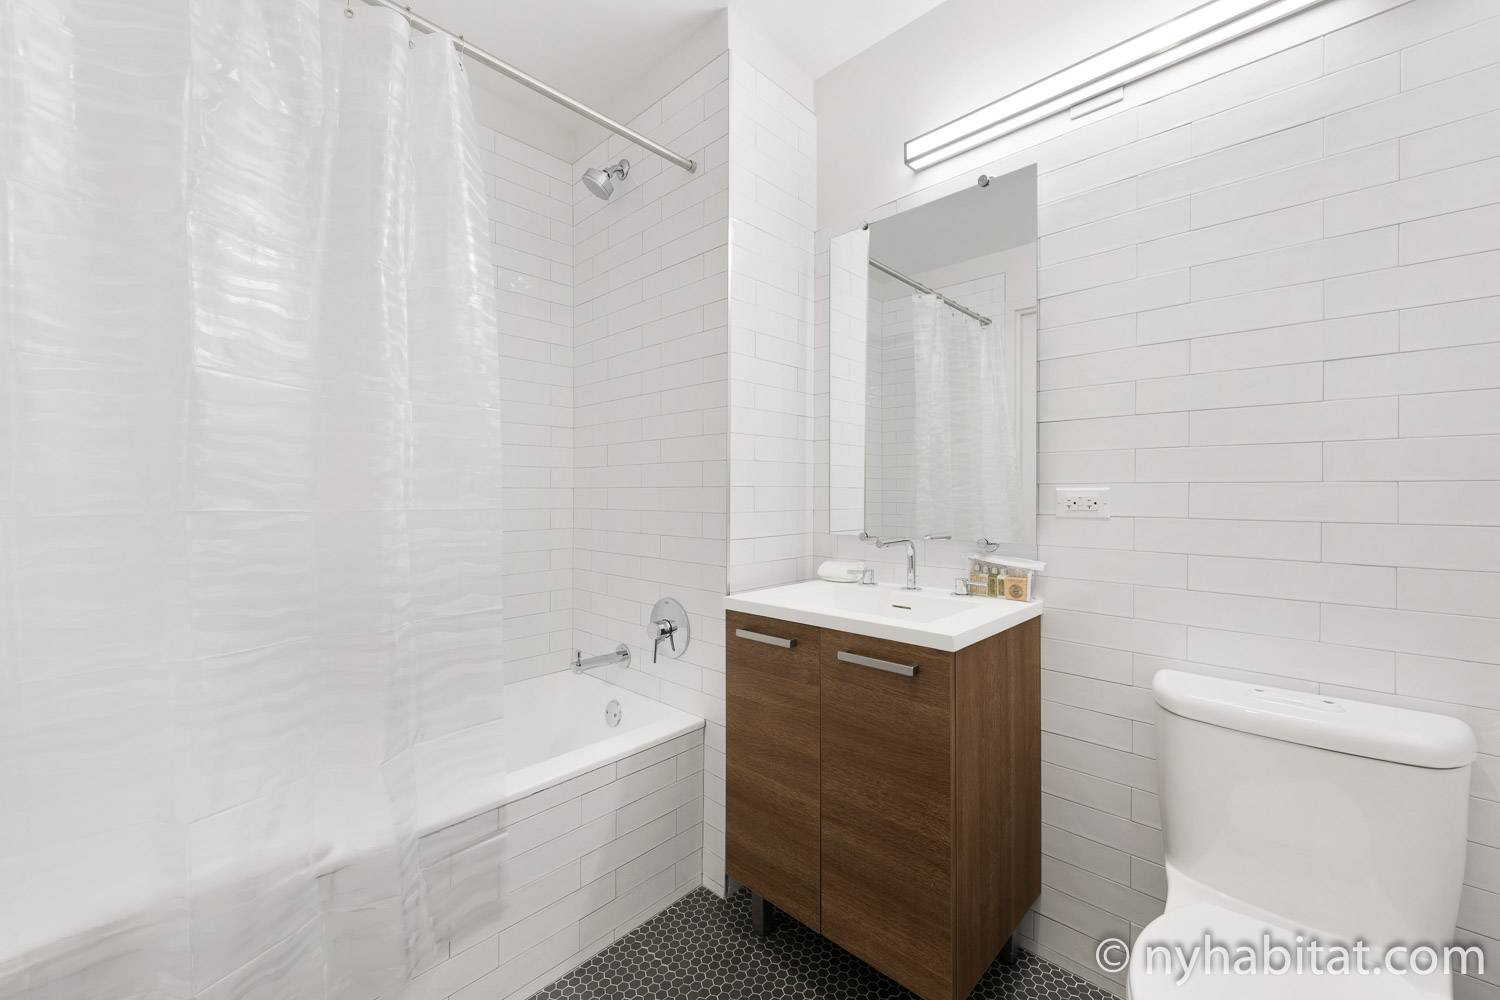 Image of bathroom in NY-17271.